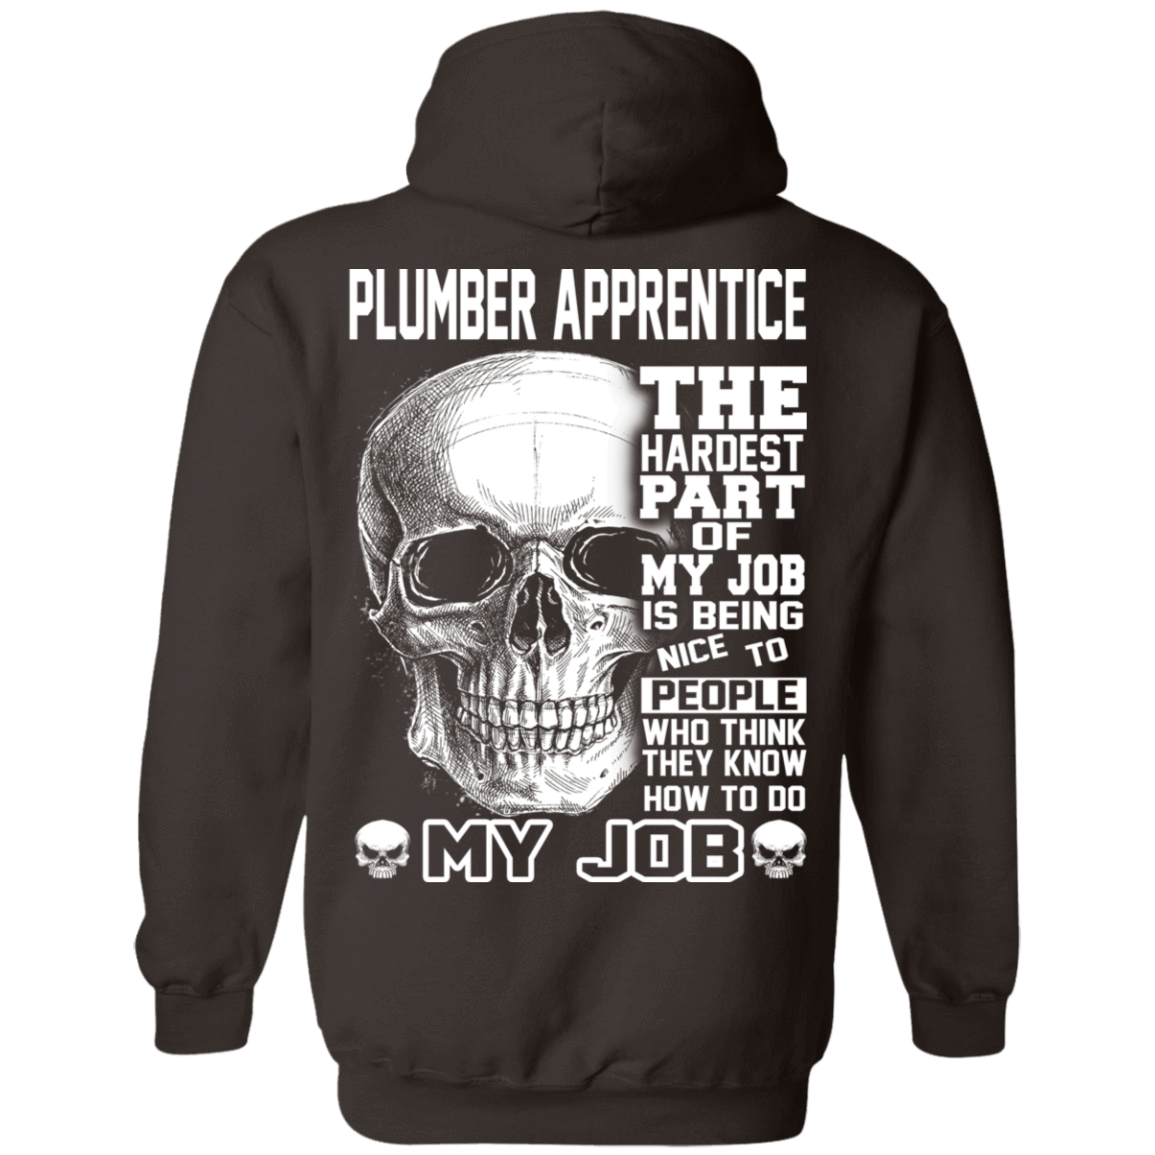 Plumber Apprentice The Hardest Part Of My Job 541-4752-72369947-23095 - Tee Ript